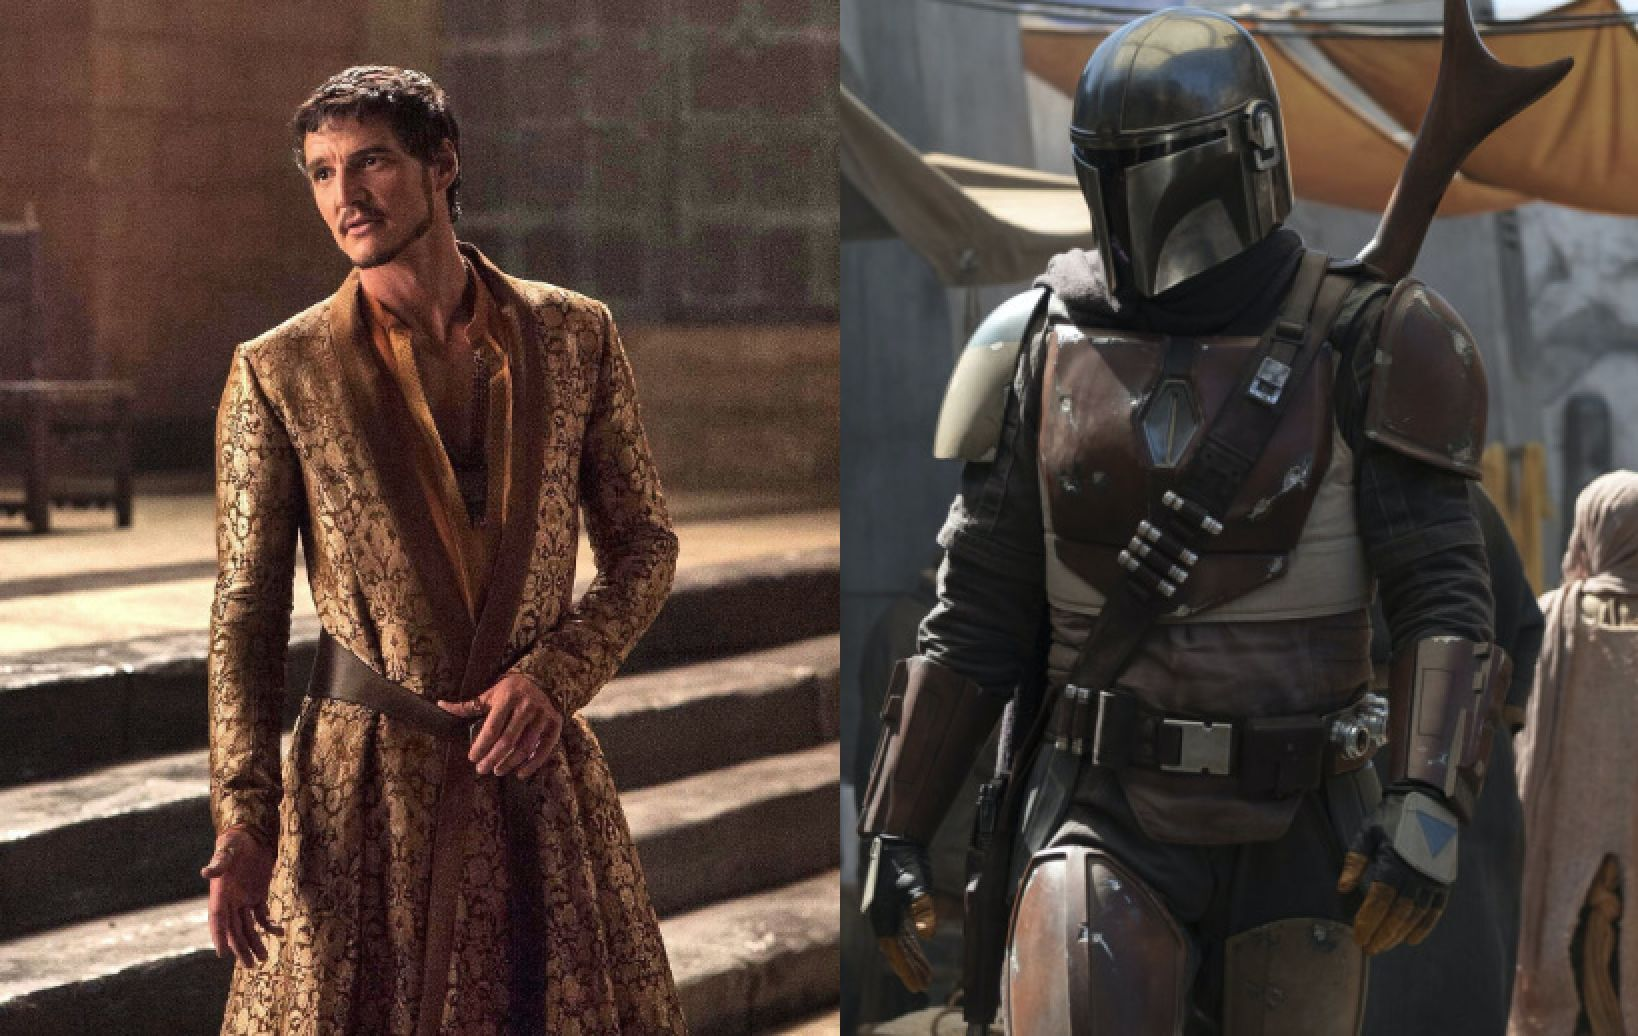 Pedro Pascal explains the similarities between Game of Thrones and Star Wars